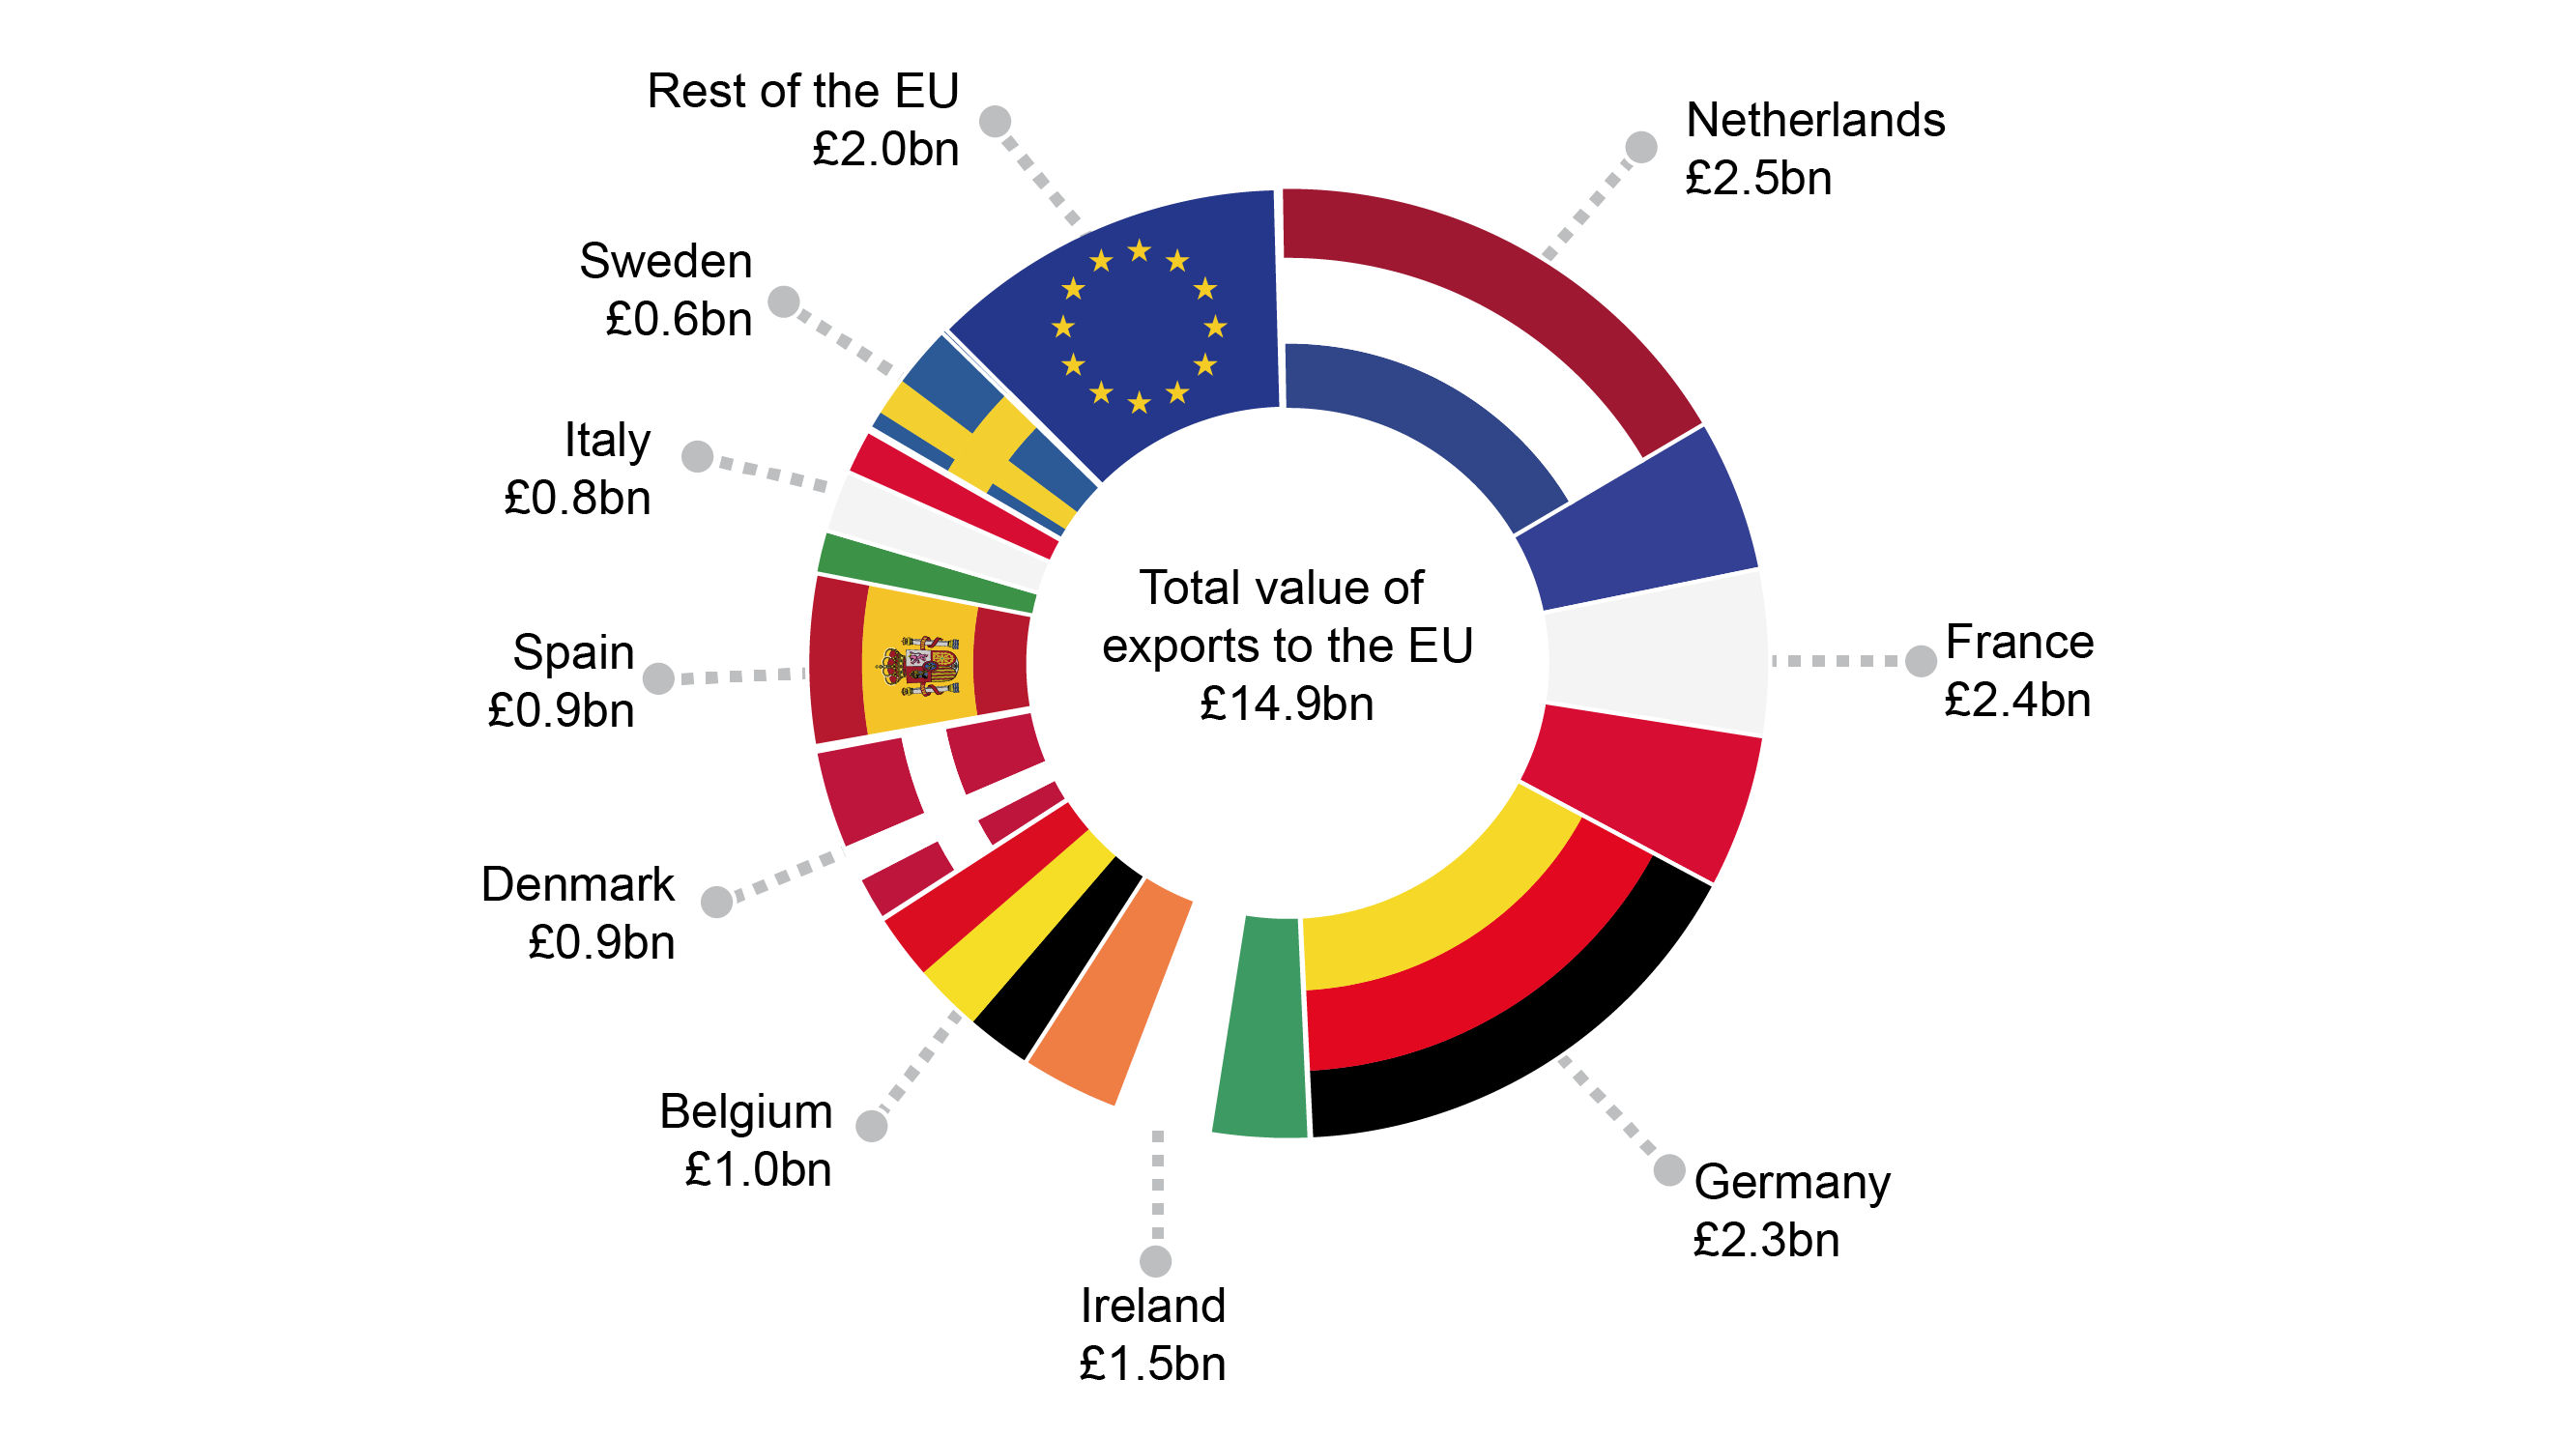 The value of exports to countries in the European Union in 2017.